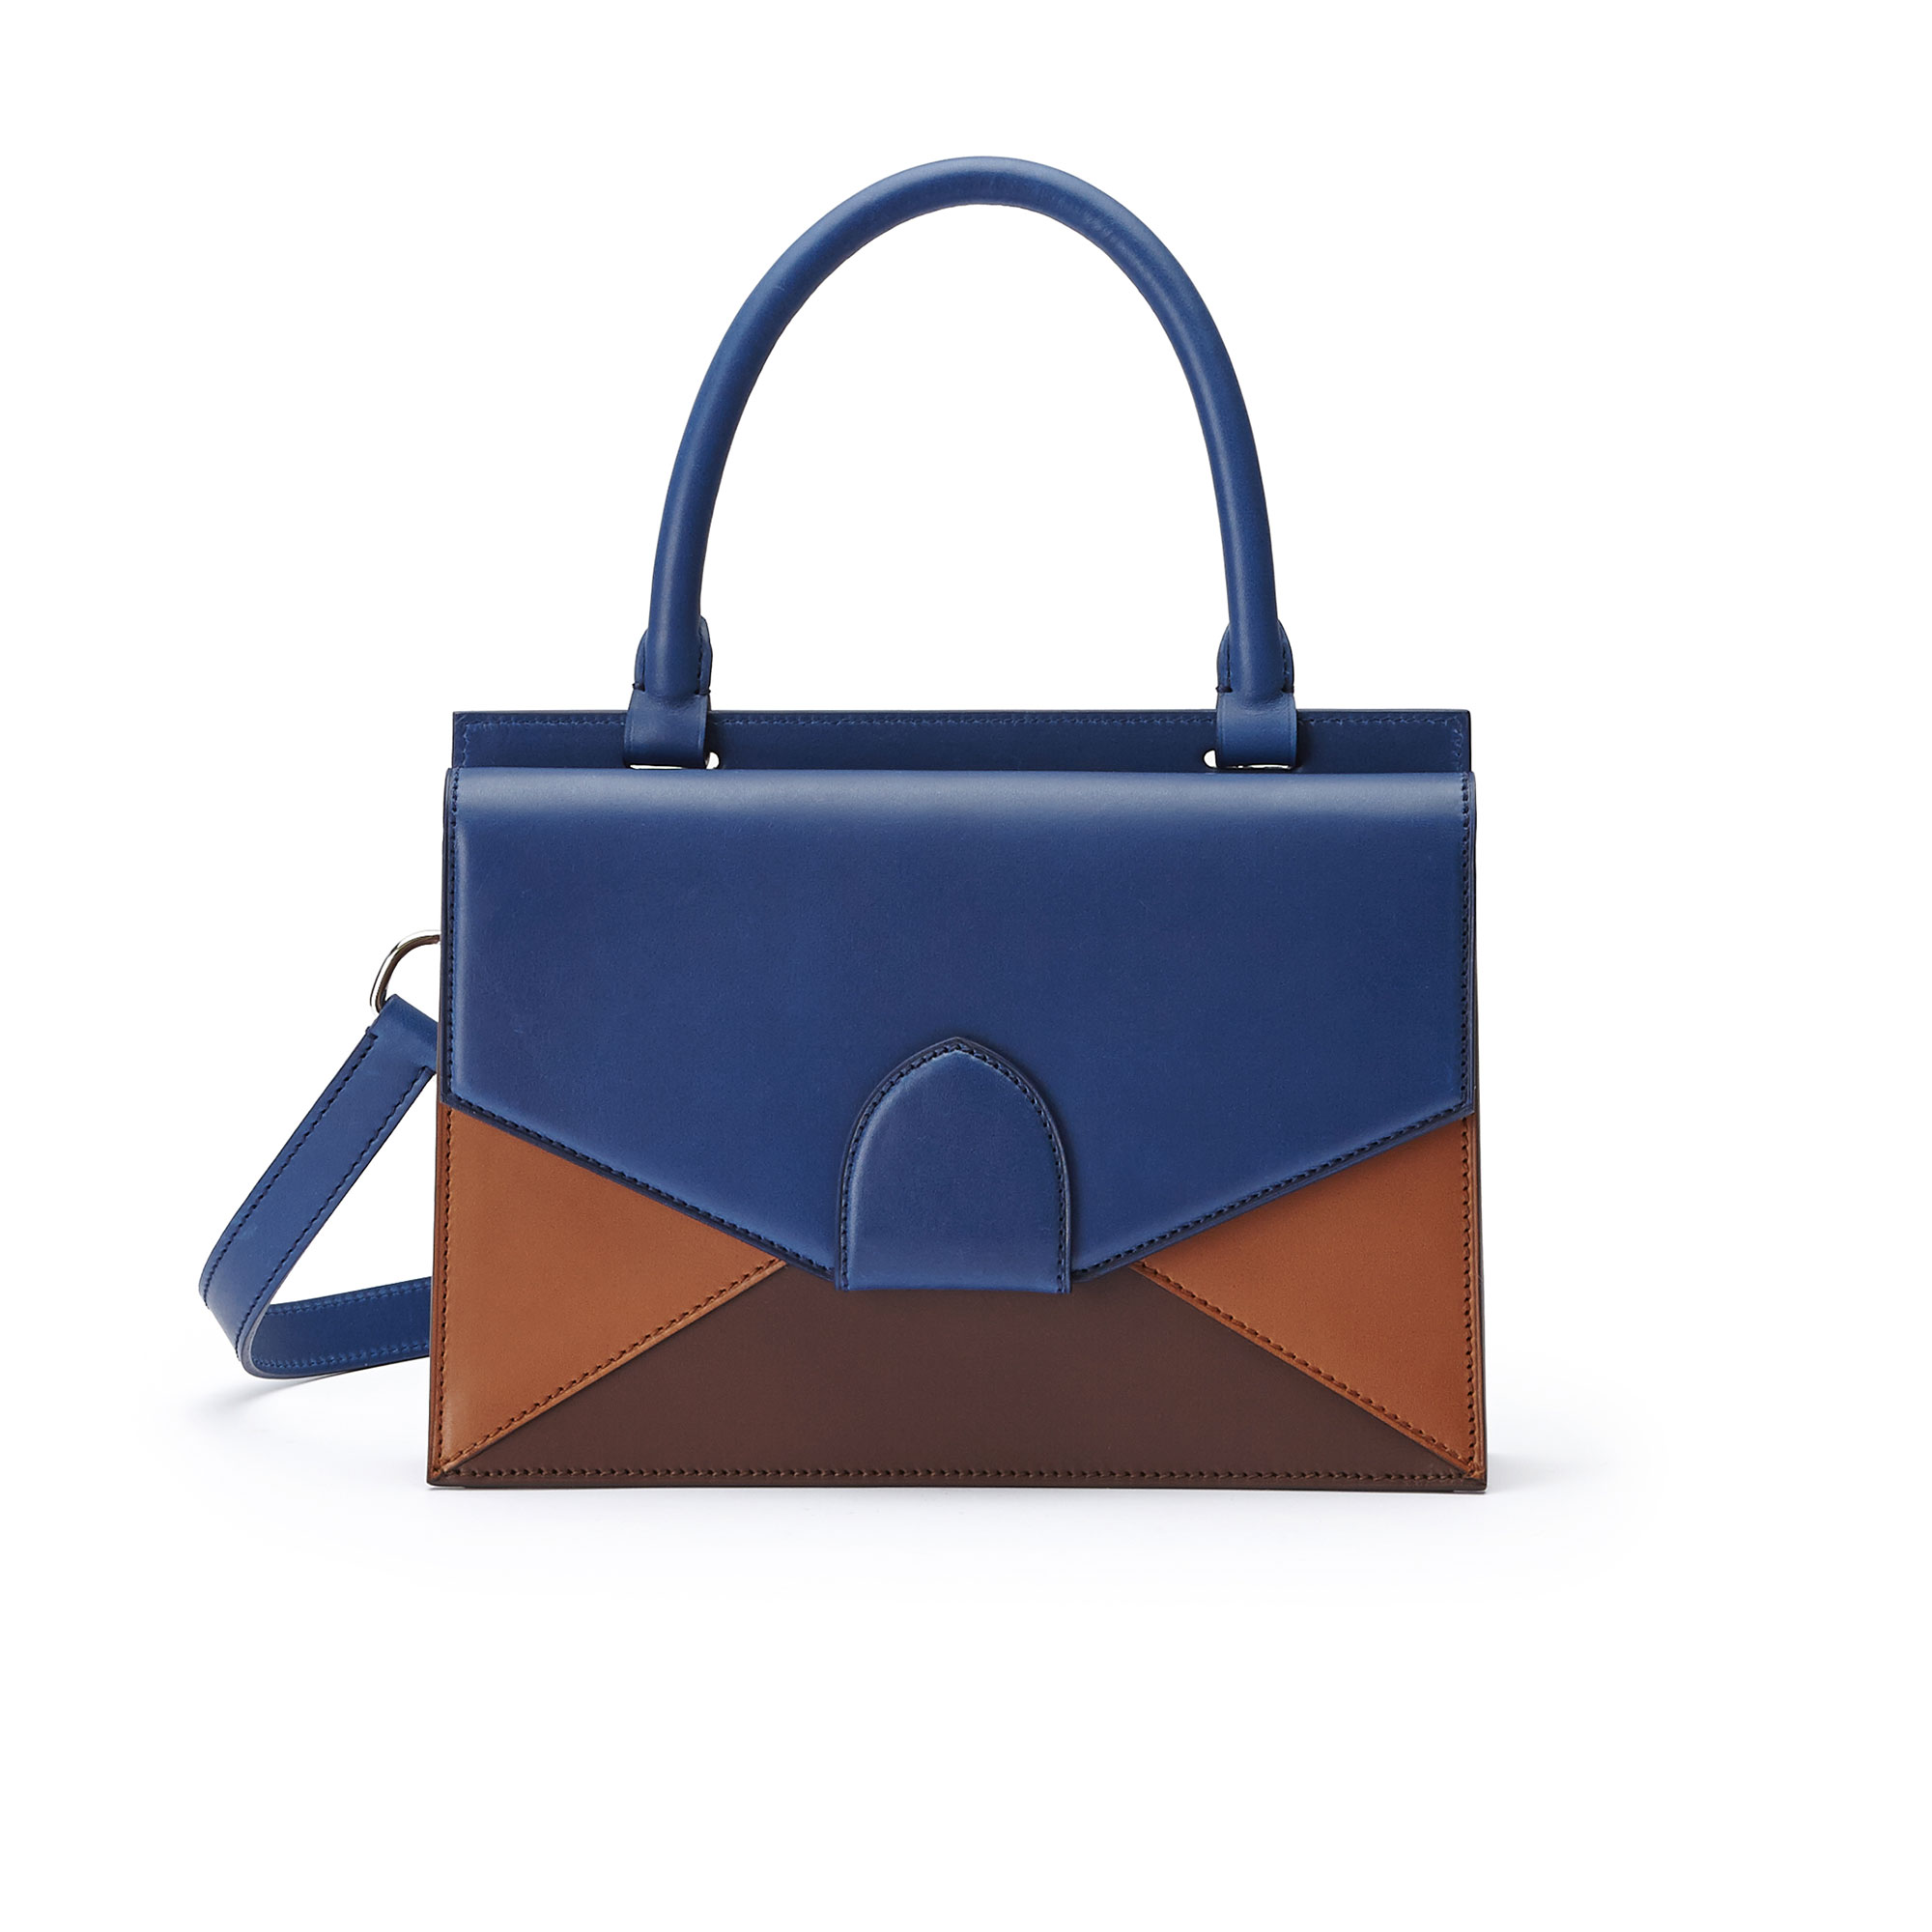 The black, blue and terrabruciata french calf Medium Dafne bag by Bertoni 1949 01